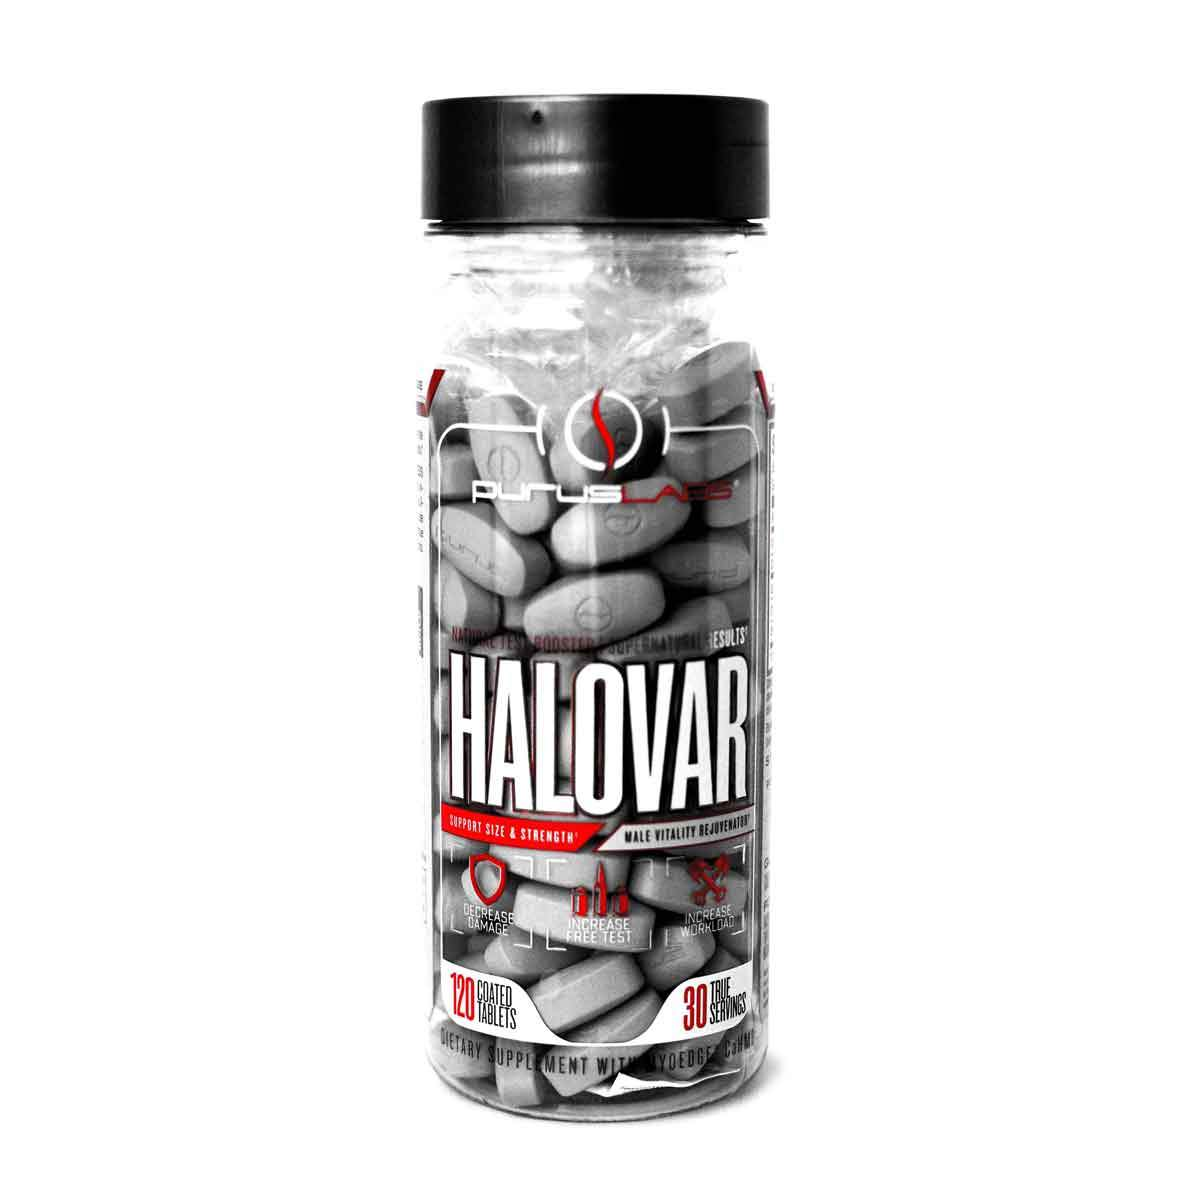 Purus Labs Halovar 120ct Other Supplements Purus Labs  (1262500872235)